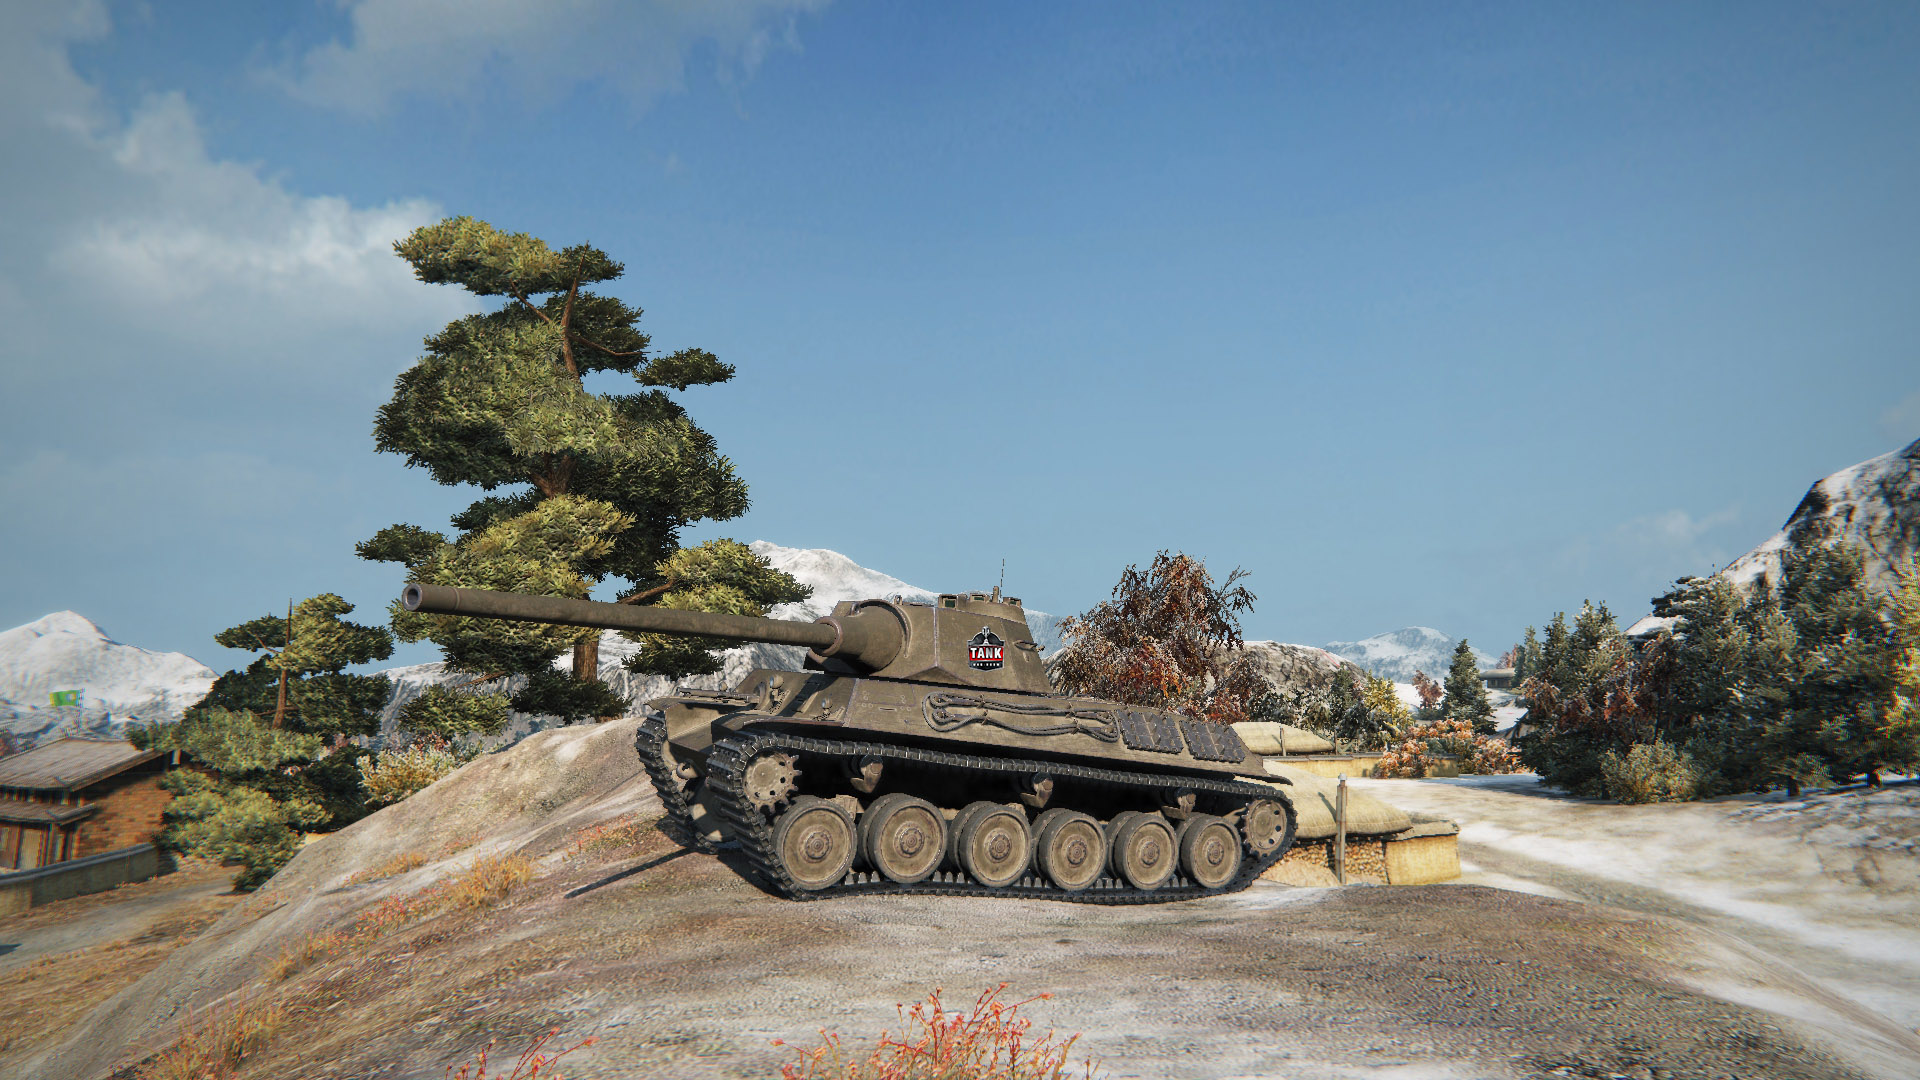 Be sure to leave your guess in the comment section. Include the name of the tank and its gun!